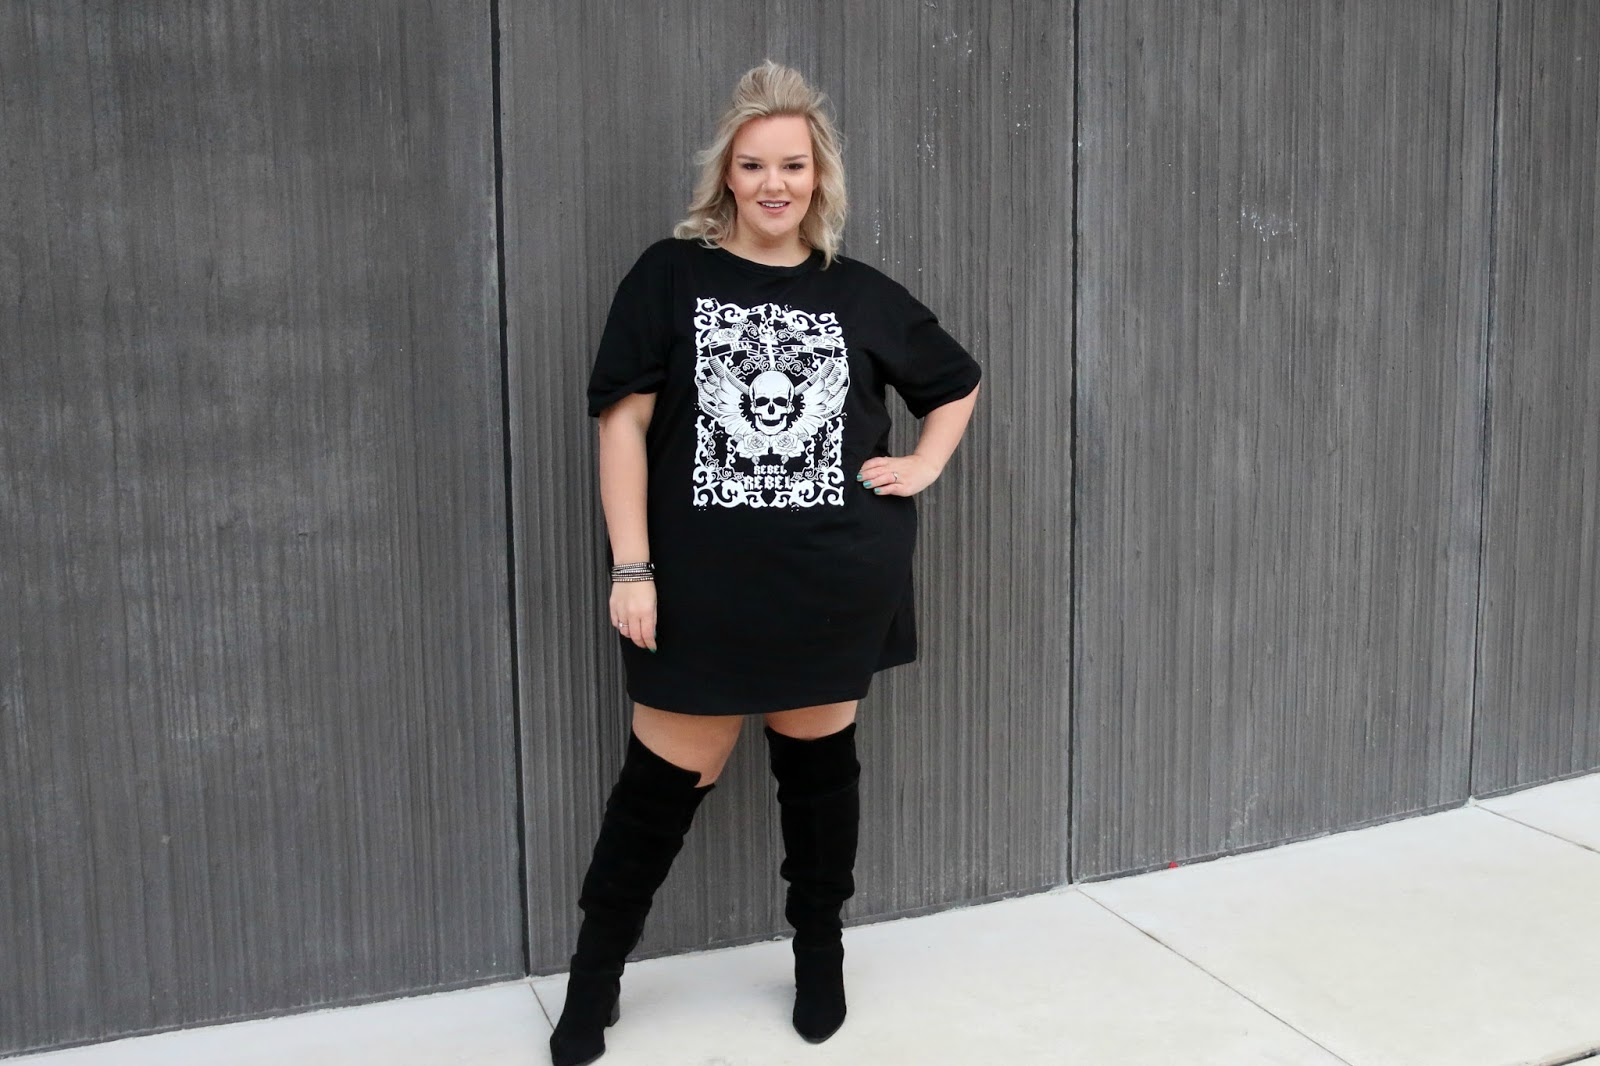 In The Style Curve Charlotte Crosby Black Rebel Rebel Skull Oversized T Shirt Dress on plus size blogger whatlauraloves